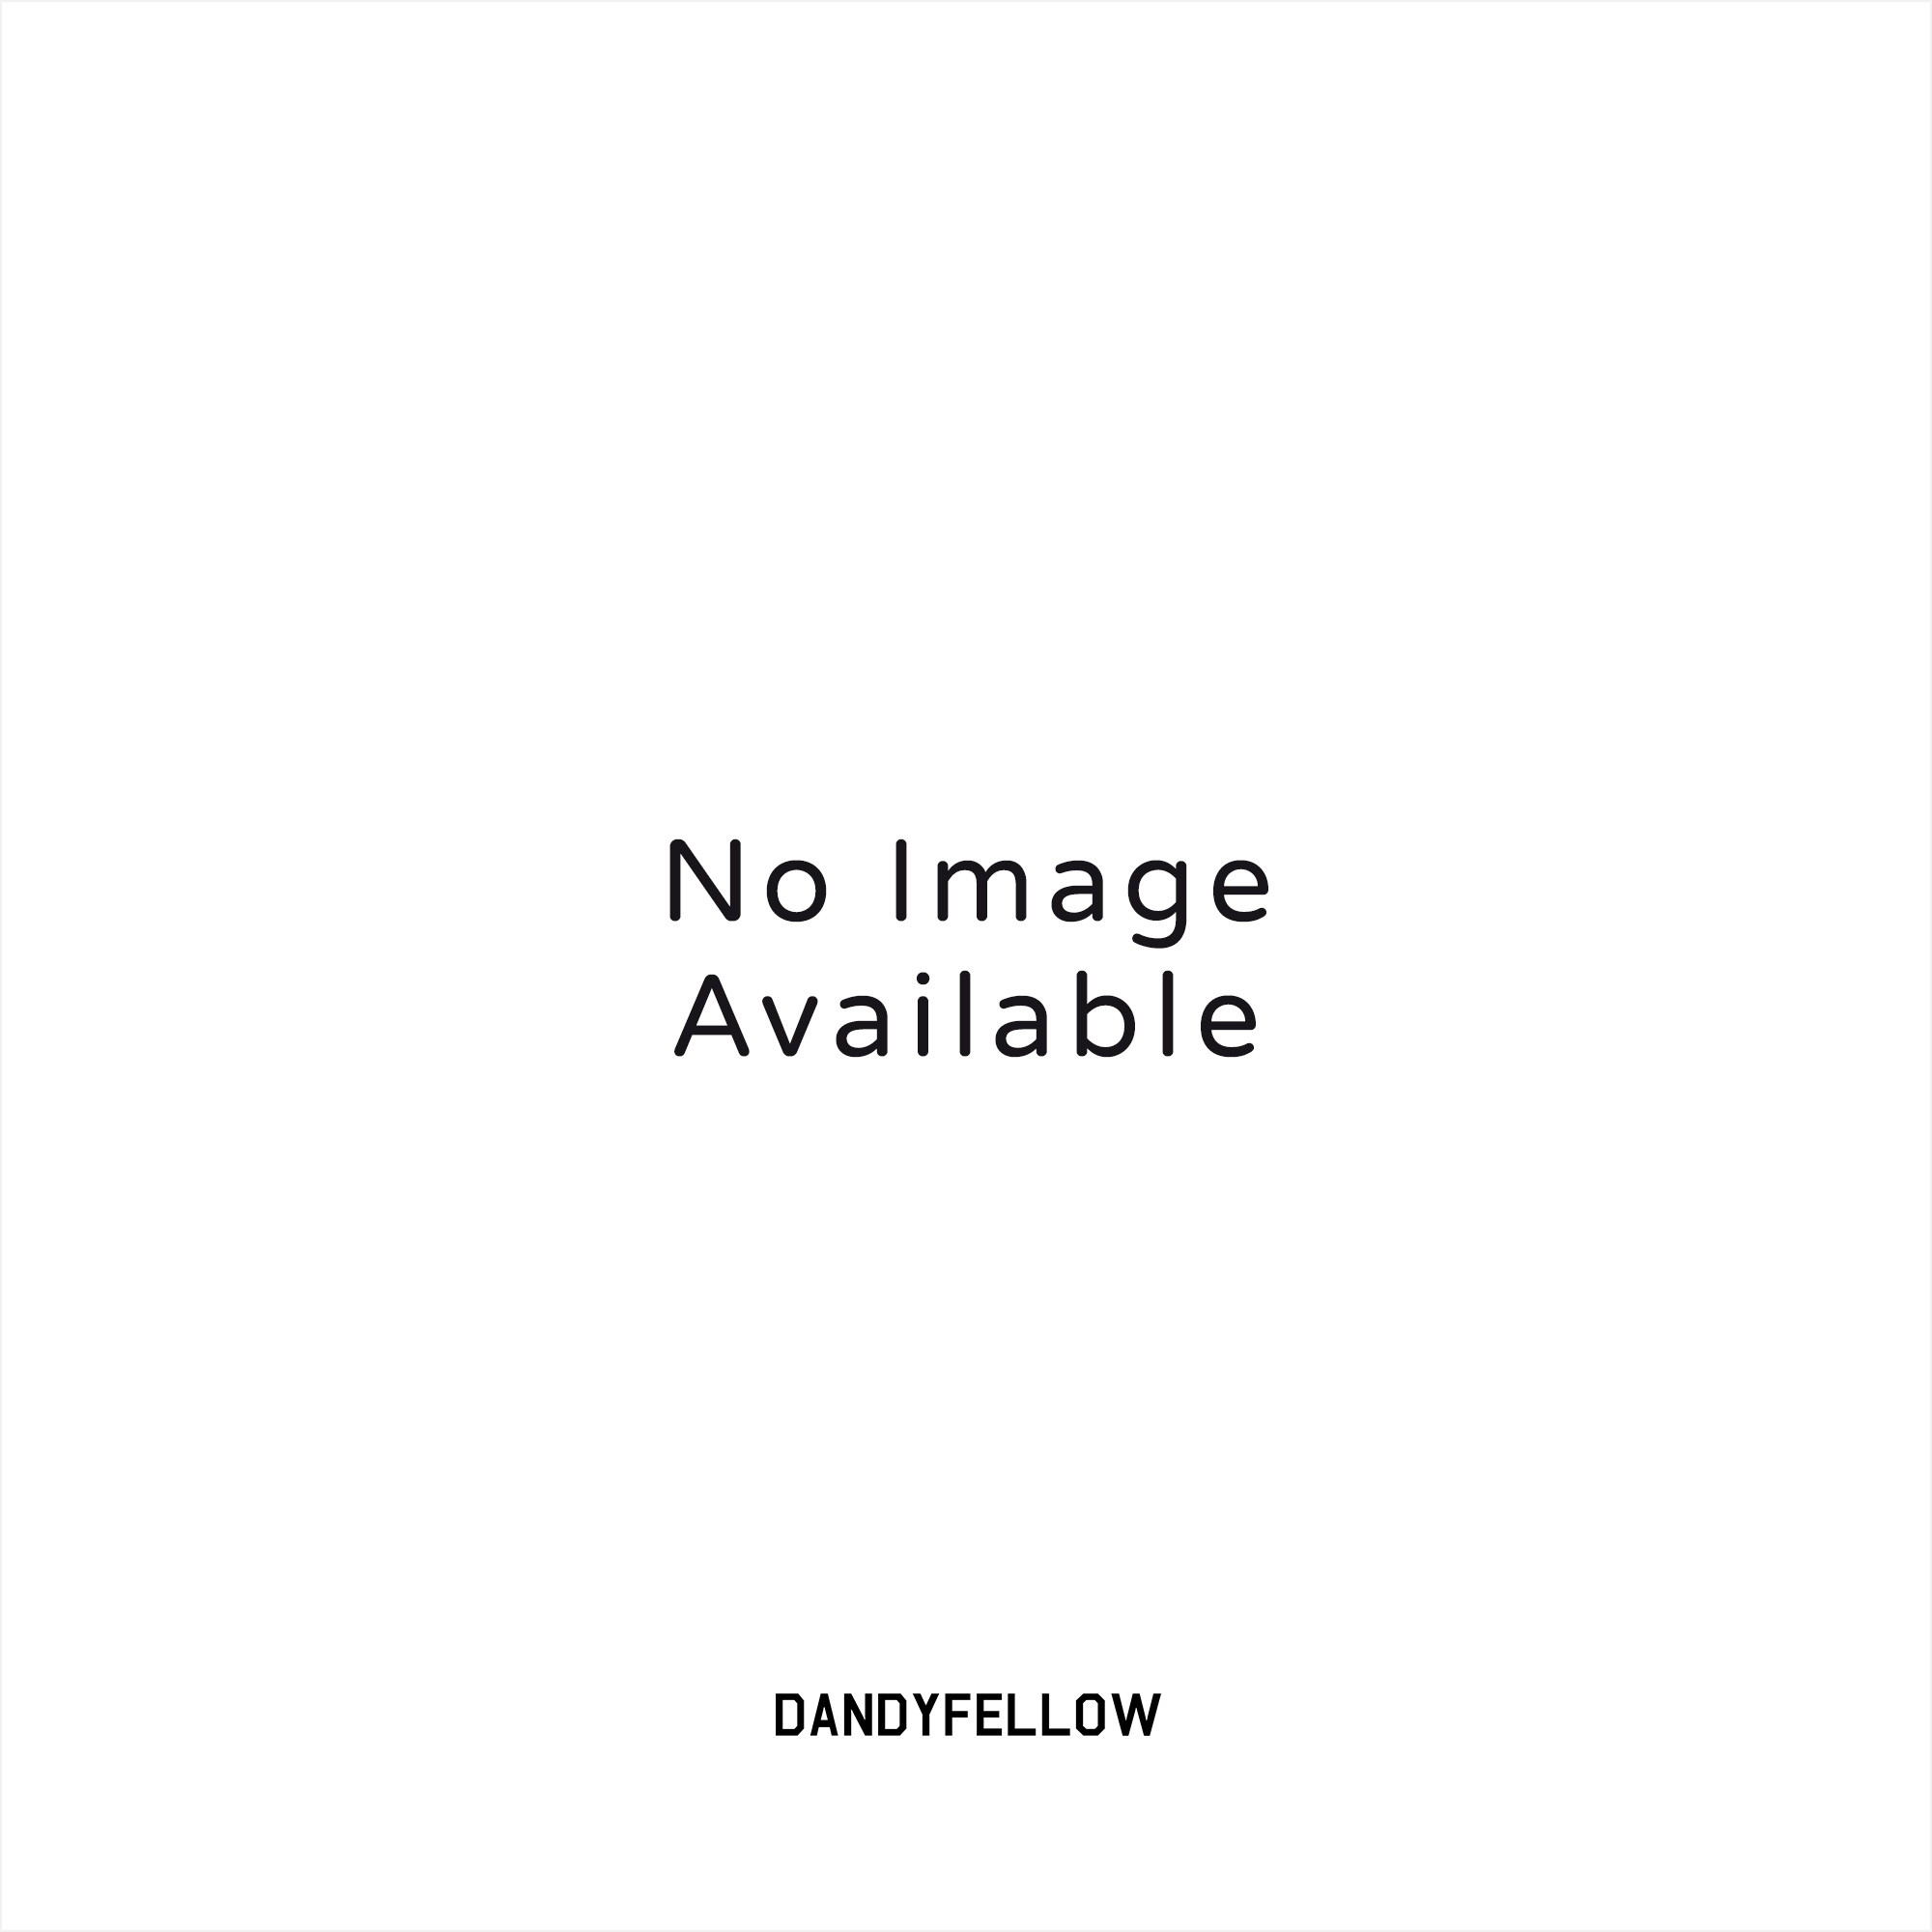 50ab85dec1f Adidas Y-3 Saikou (White) at Dandy Fellow